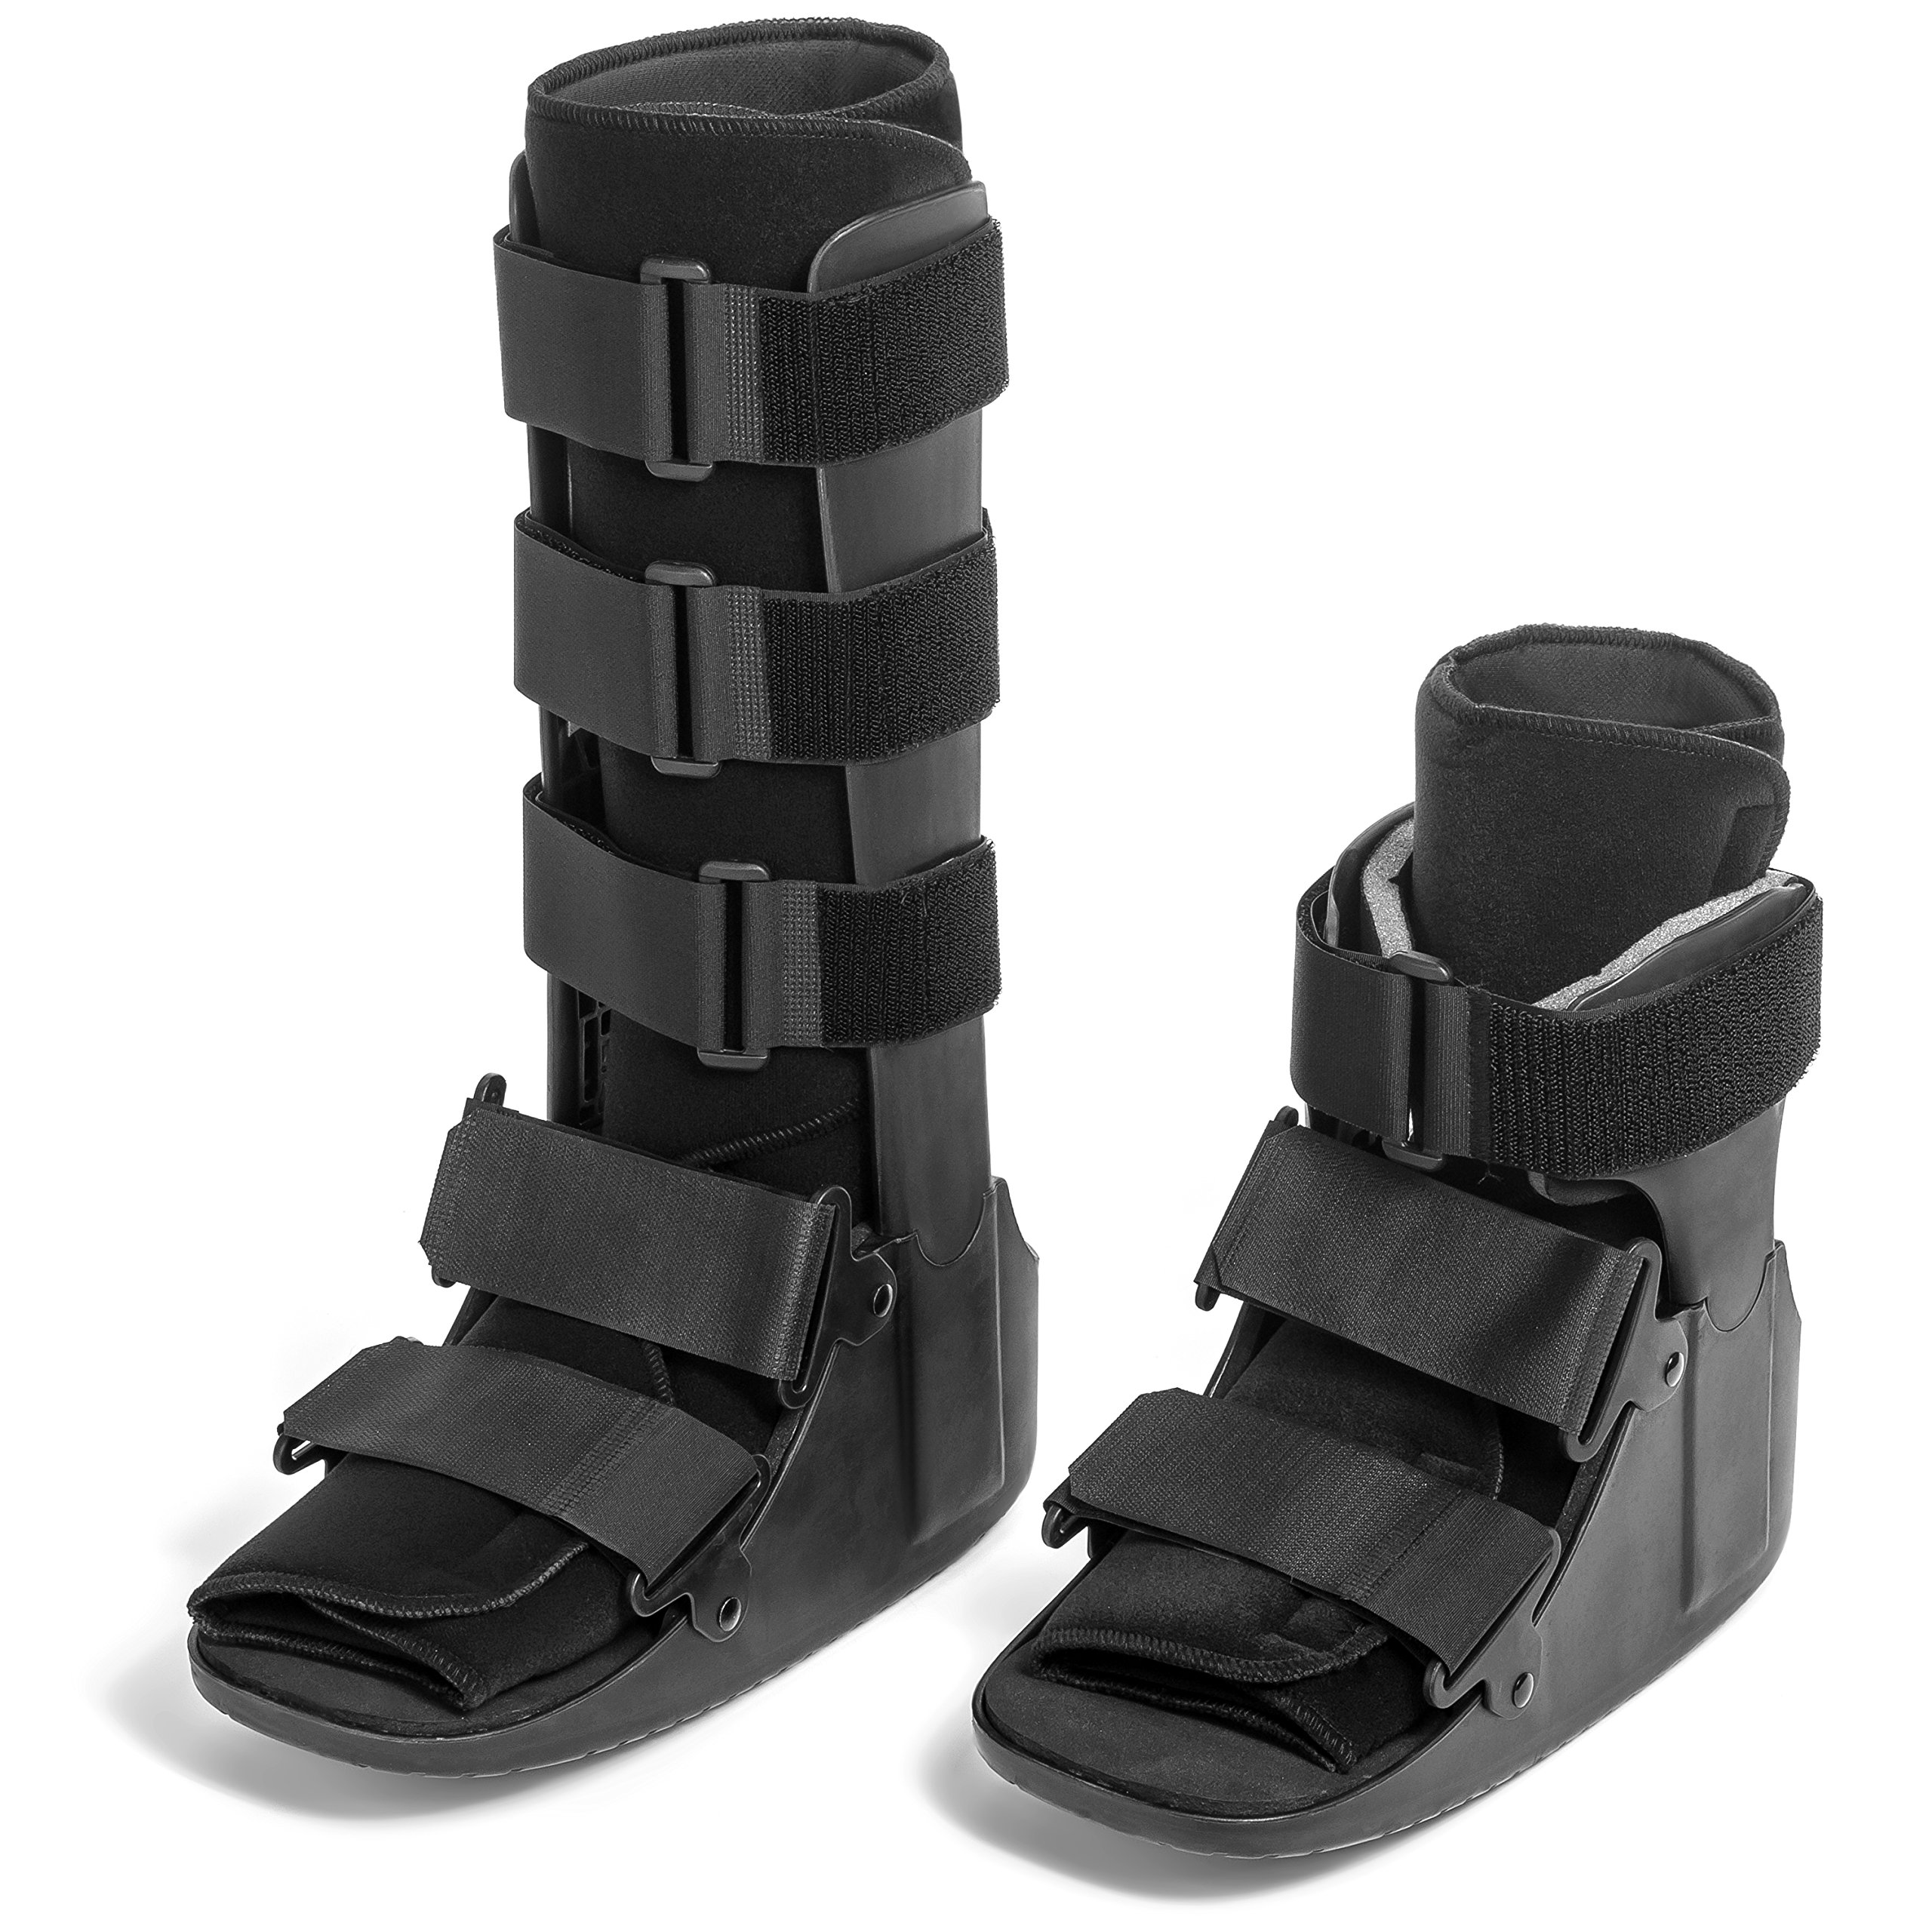 Coreline Fixed Cam Fracture Walker with Plastic Uprights for Sprains and Fractures (Tall - Medium)